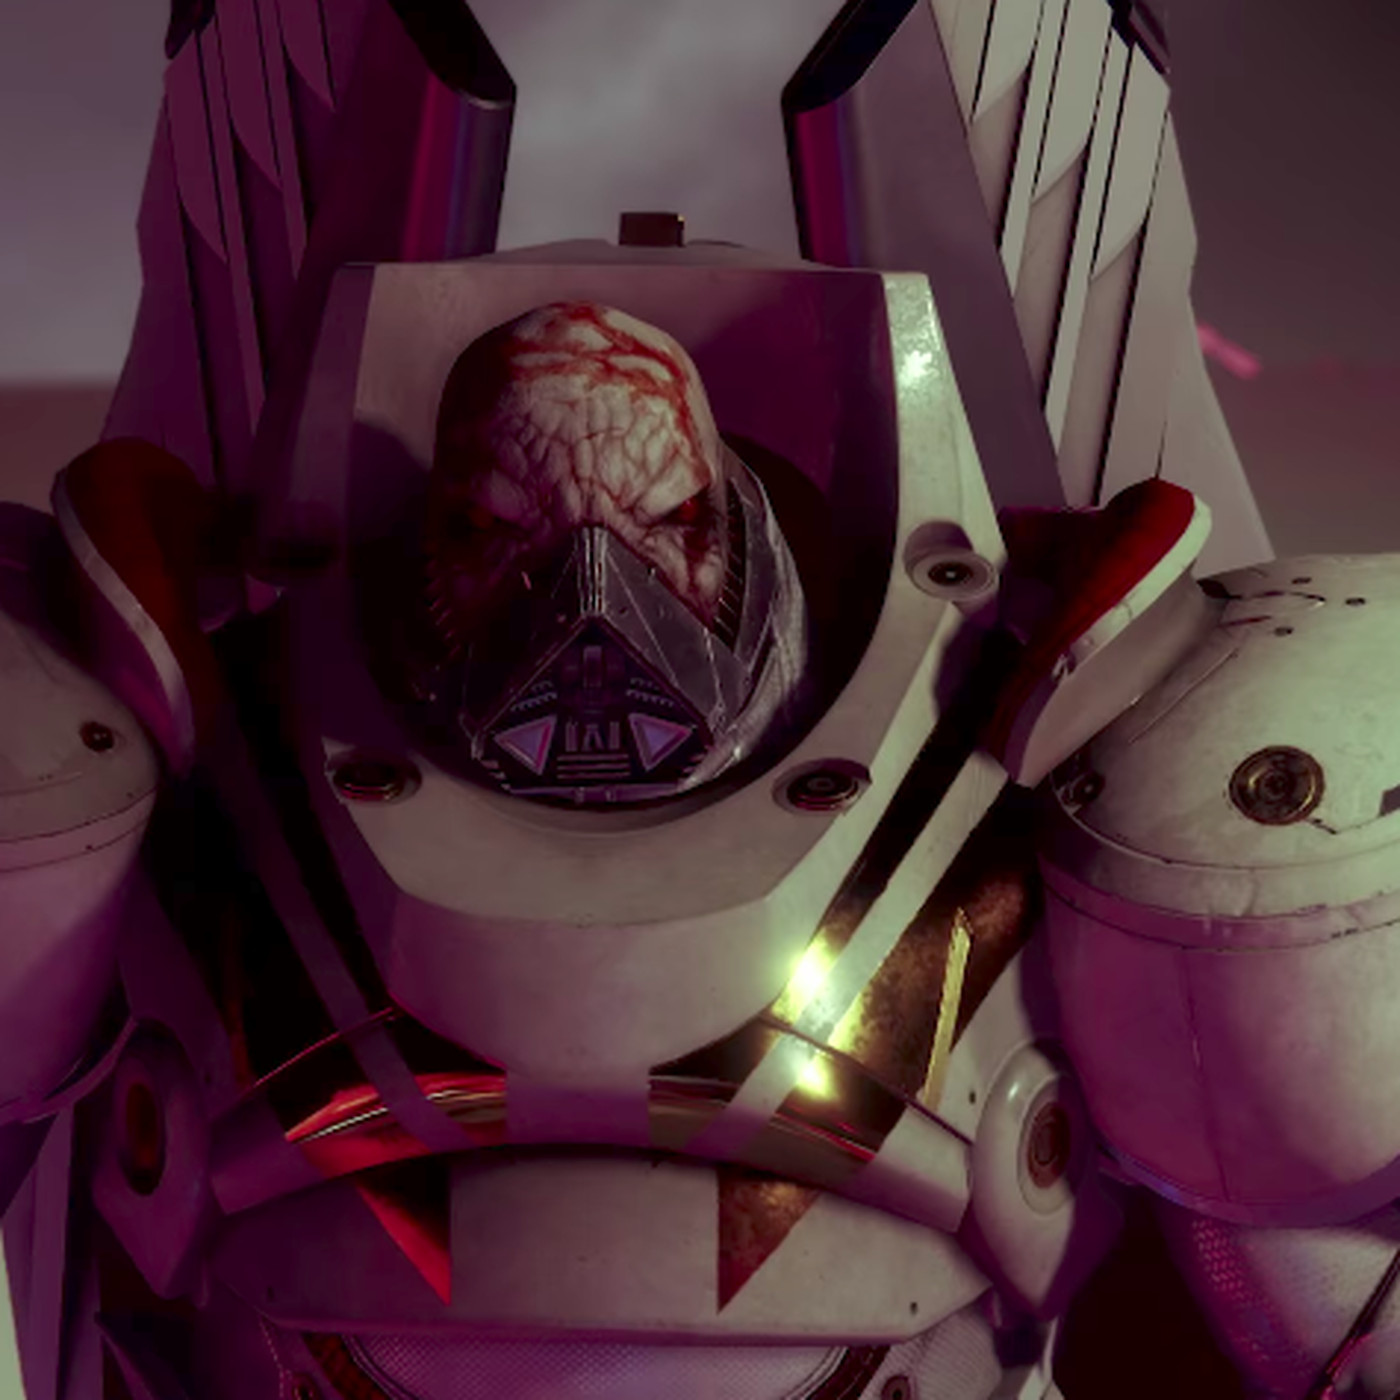 Destiny 2's latest trailer gives us our first glimpse of Ghaul, the